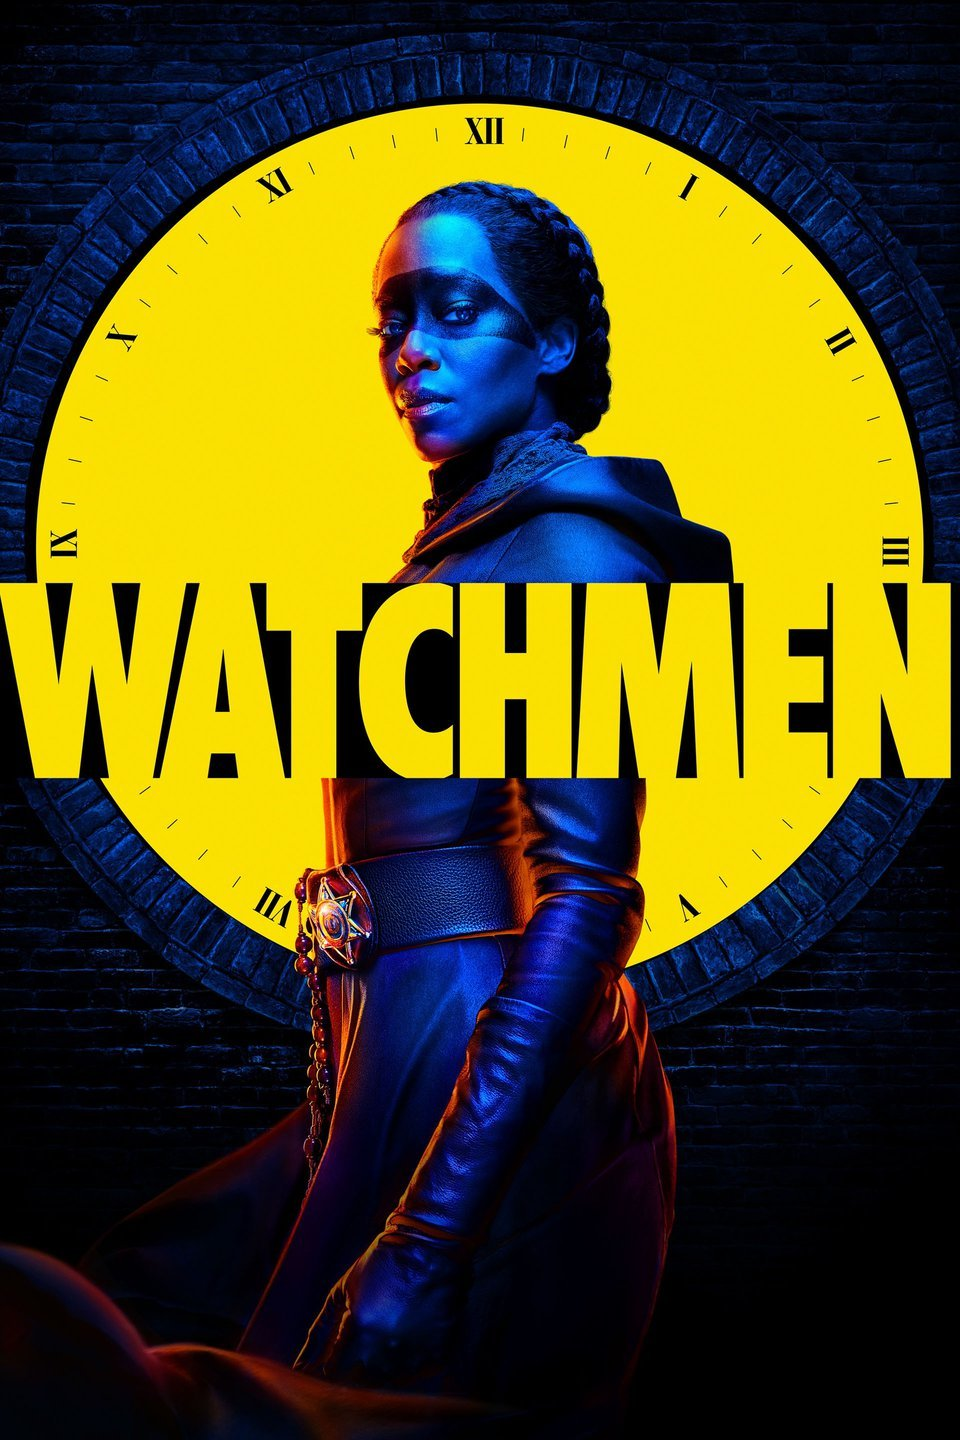 Watchmen: The Complete First Season (2019) Vudu HD code